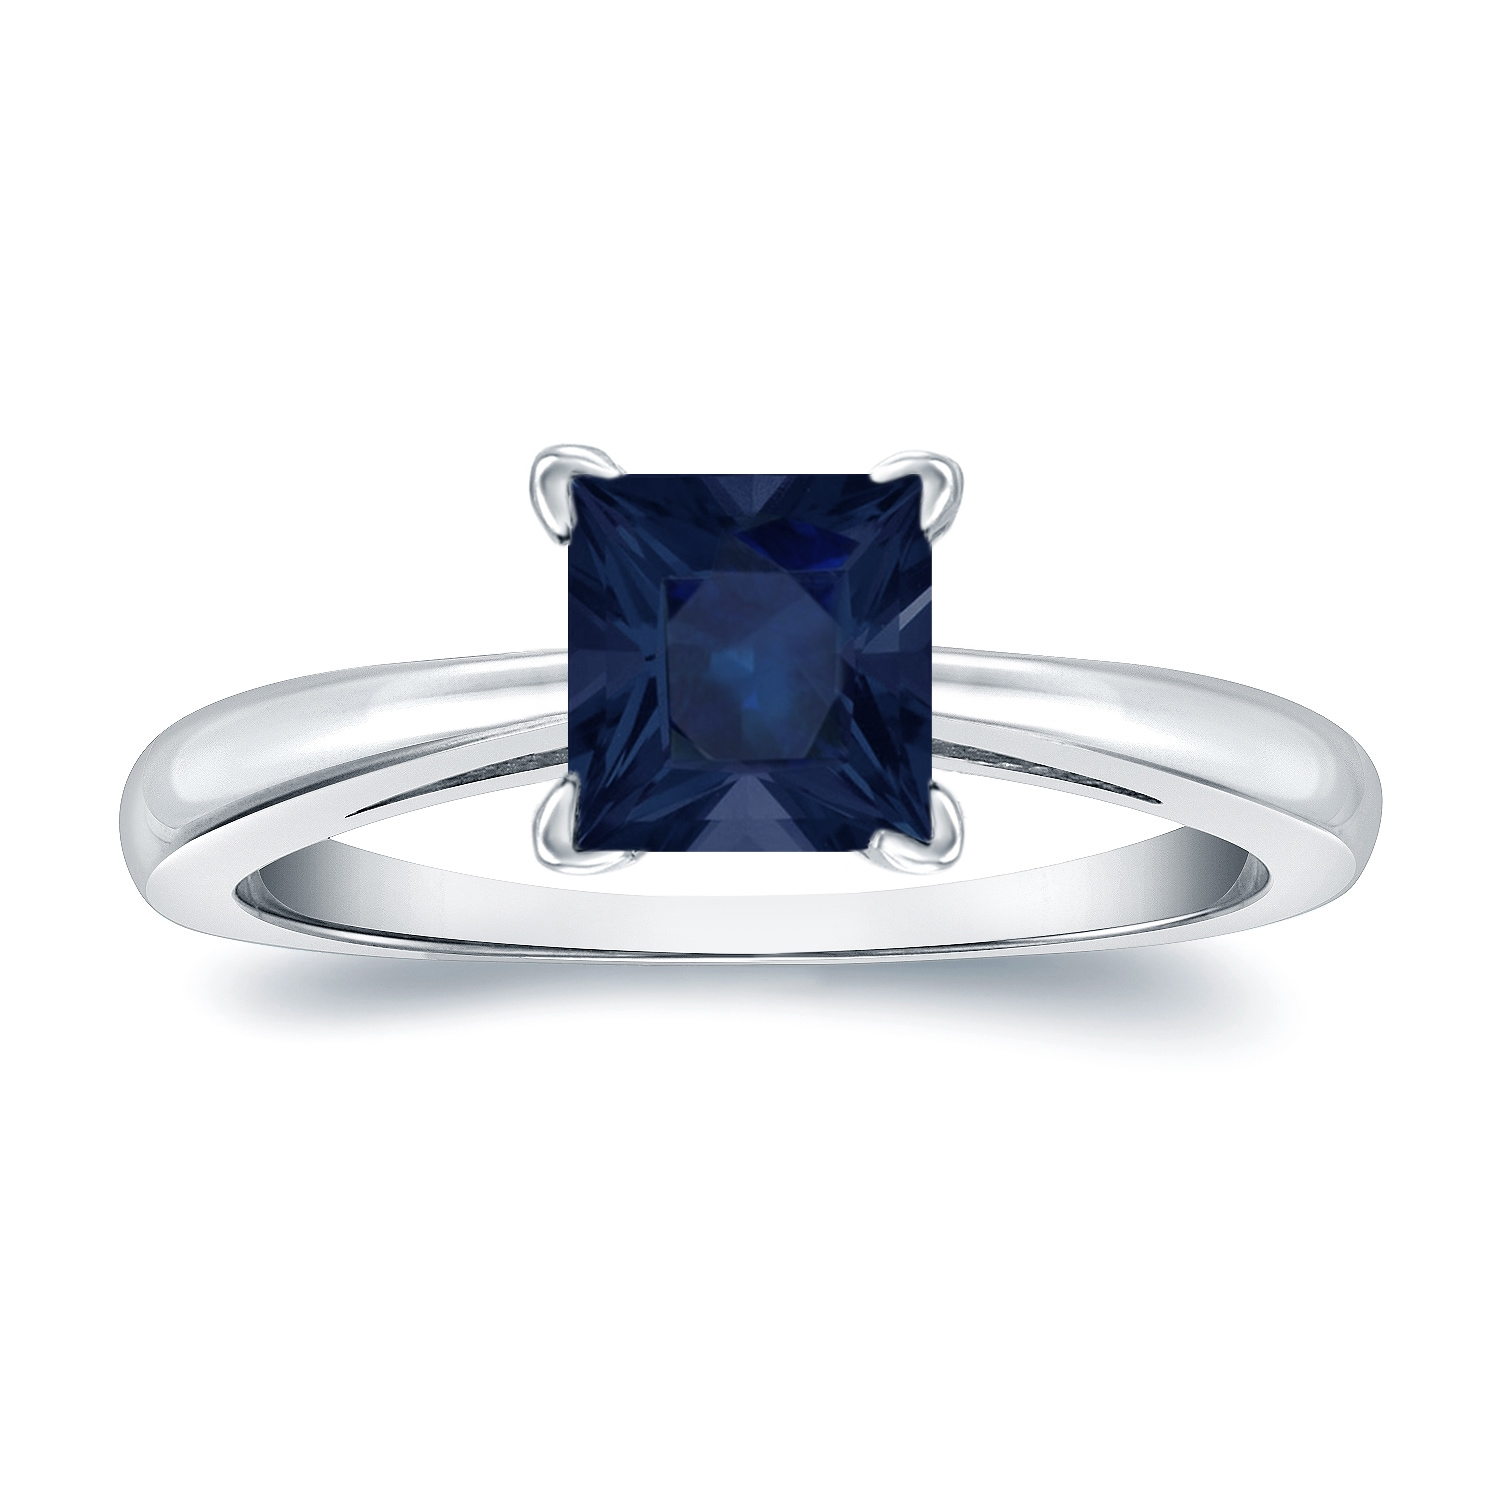 nat solitaire white jewellery bespoke sapphire oval products marie natalie